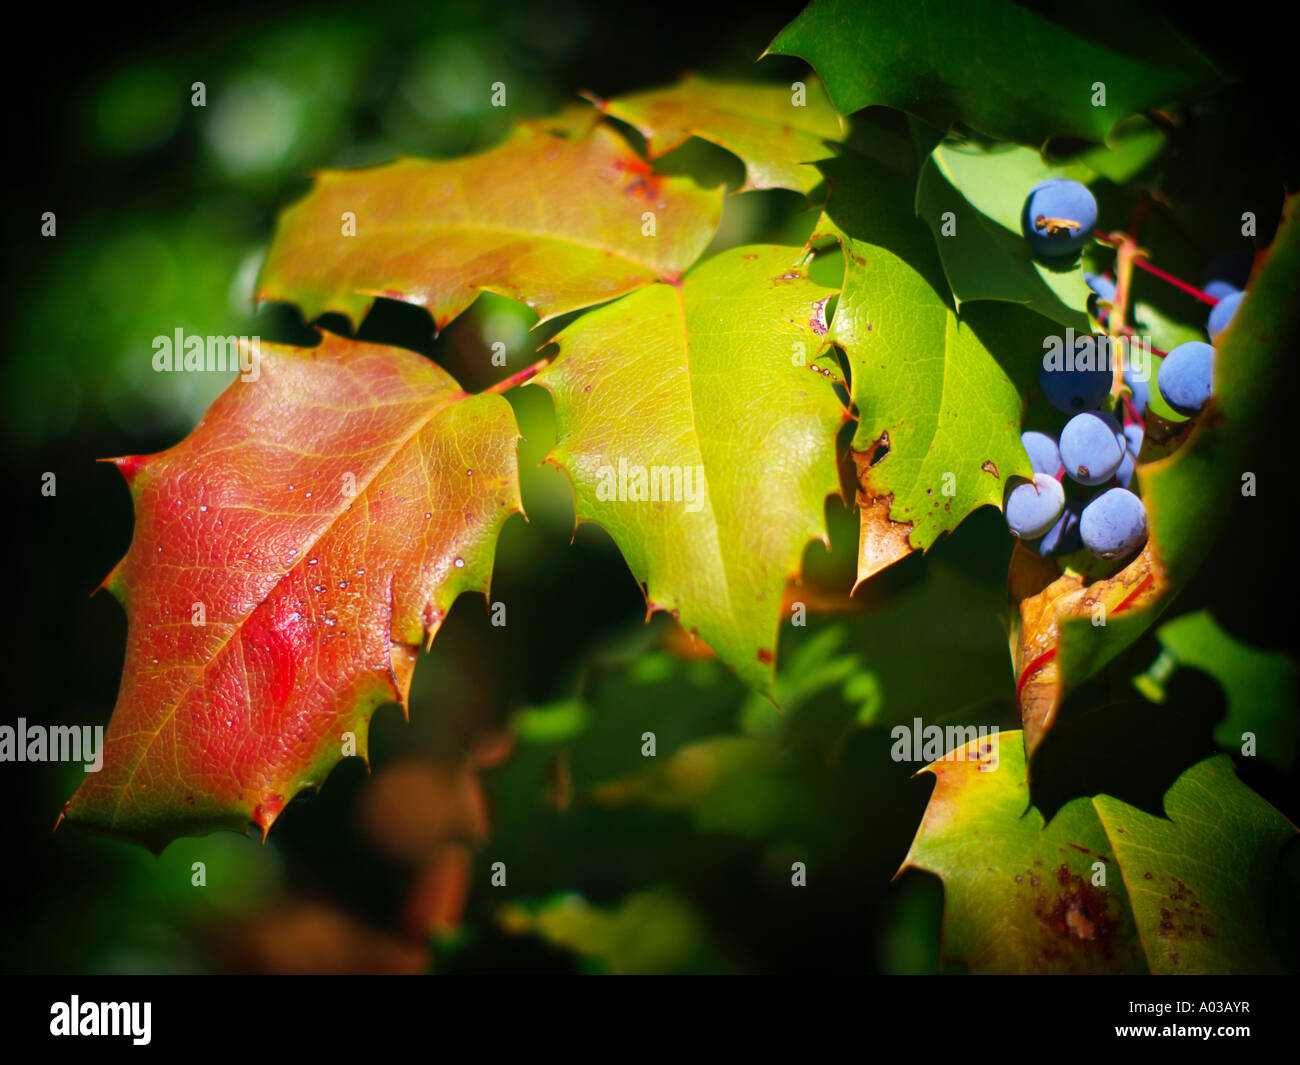 Holly family leaves and berries showing autumn colors and gradual decay in the transition to fall. Stock Photo